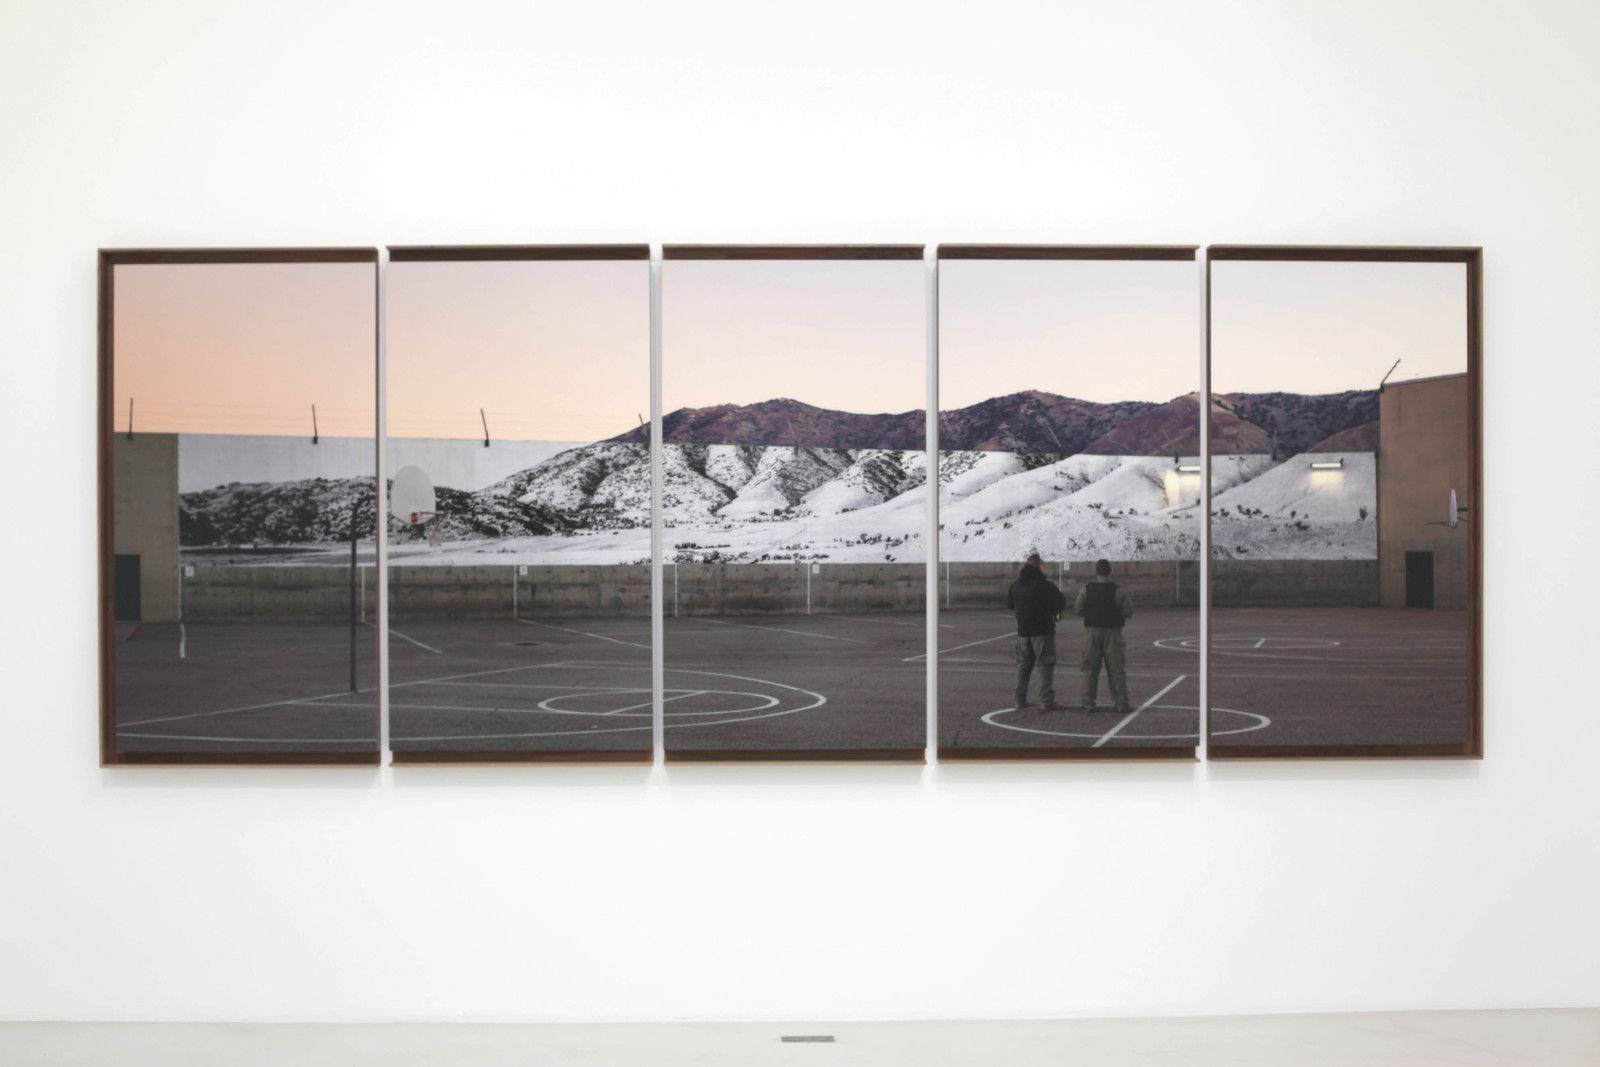 """Tehachapi, Mountain, U.S.A."", 2019 de JR - Courtesy Galerie Perrotin © Photo Éric Simon"